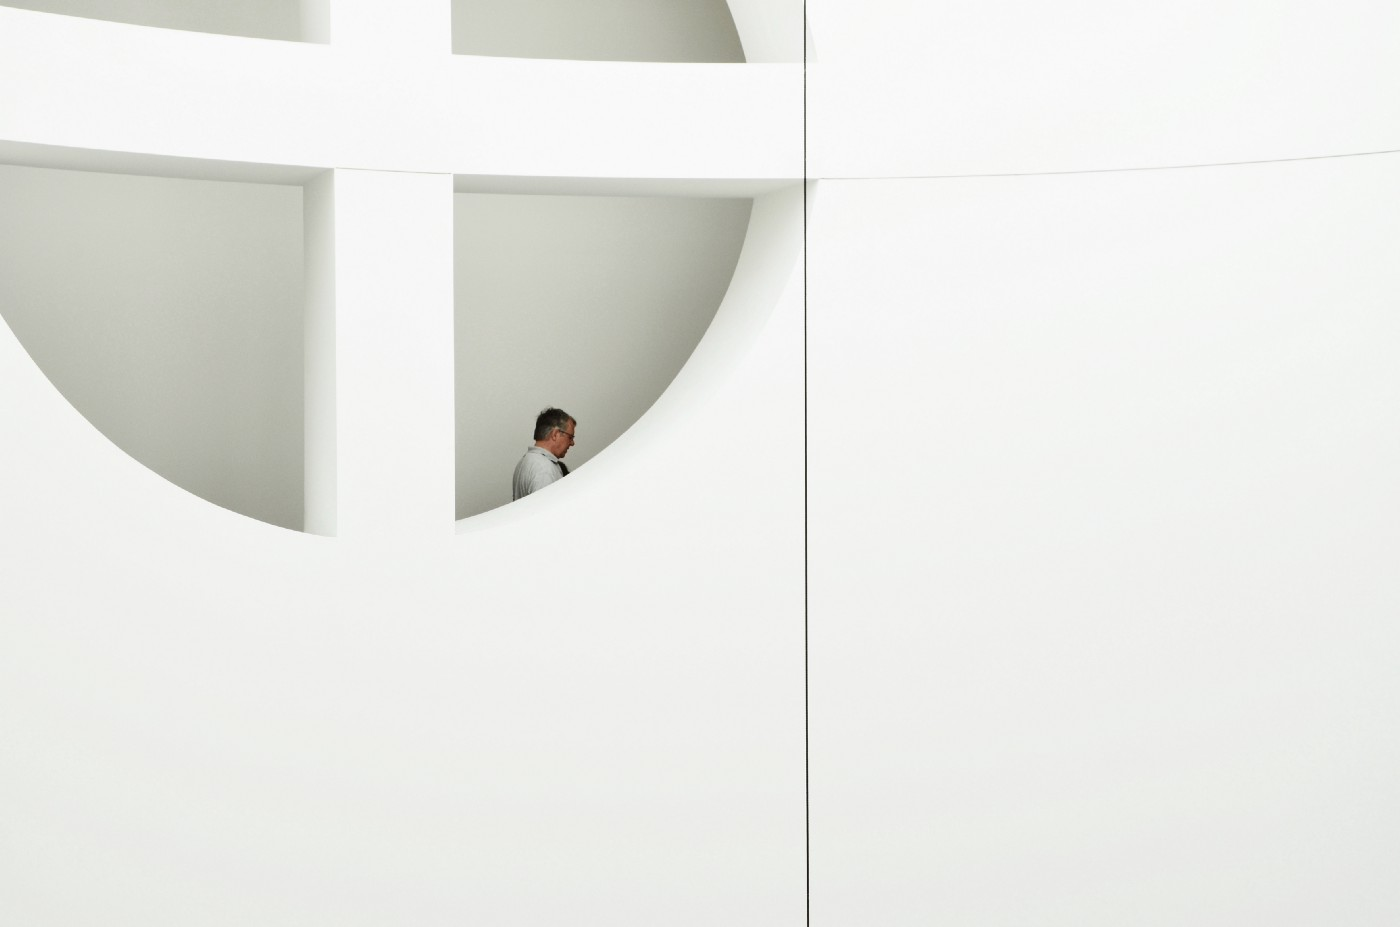 Man standing in near window in white architecture